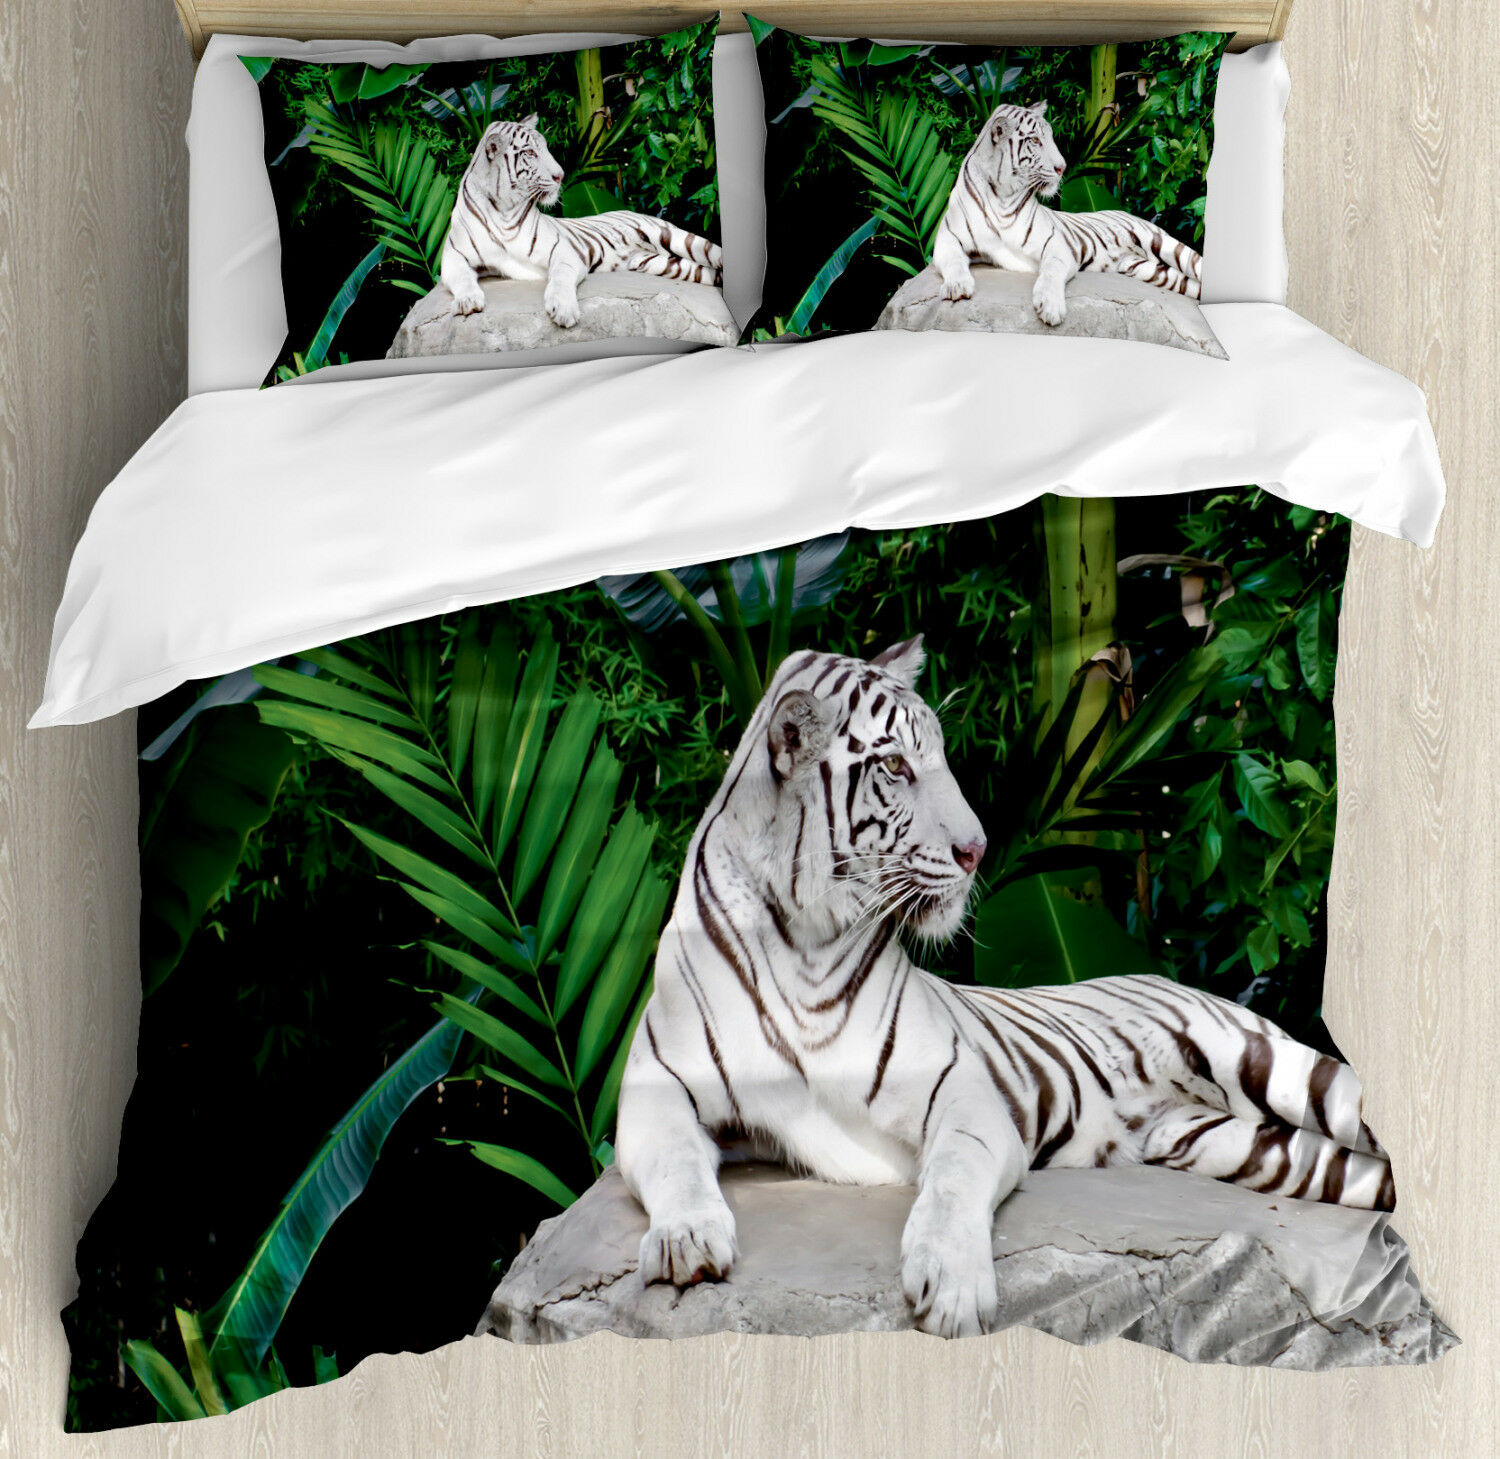 Safari Duvet Cover Set with Pillow Shams White Tiger in Jungle Print